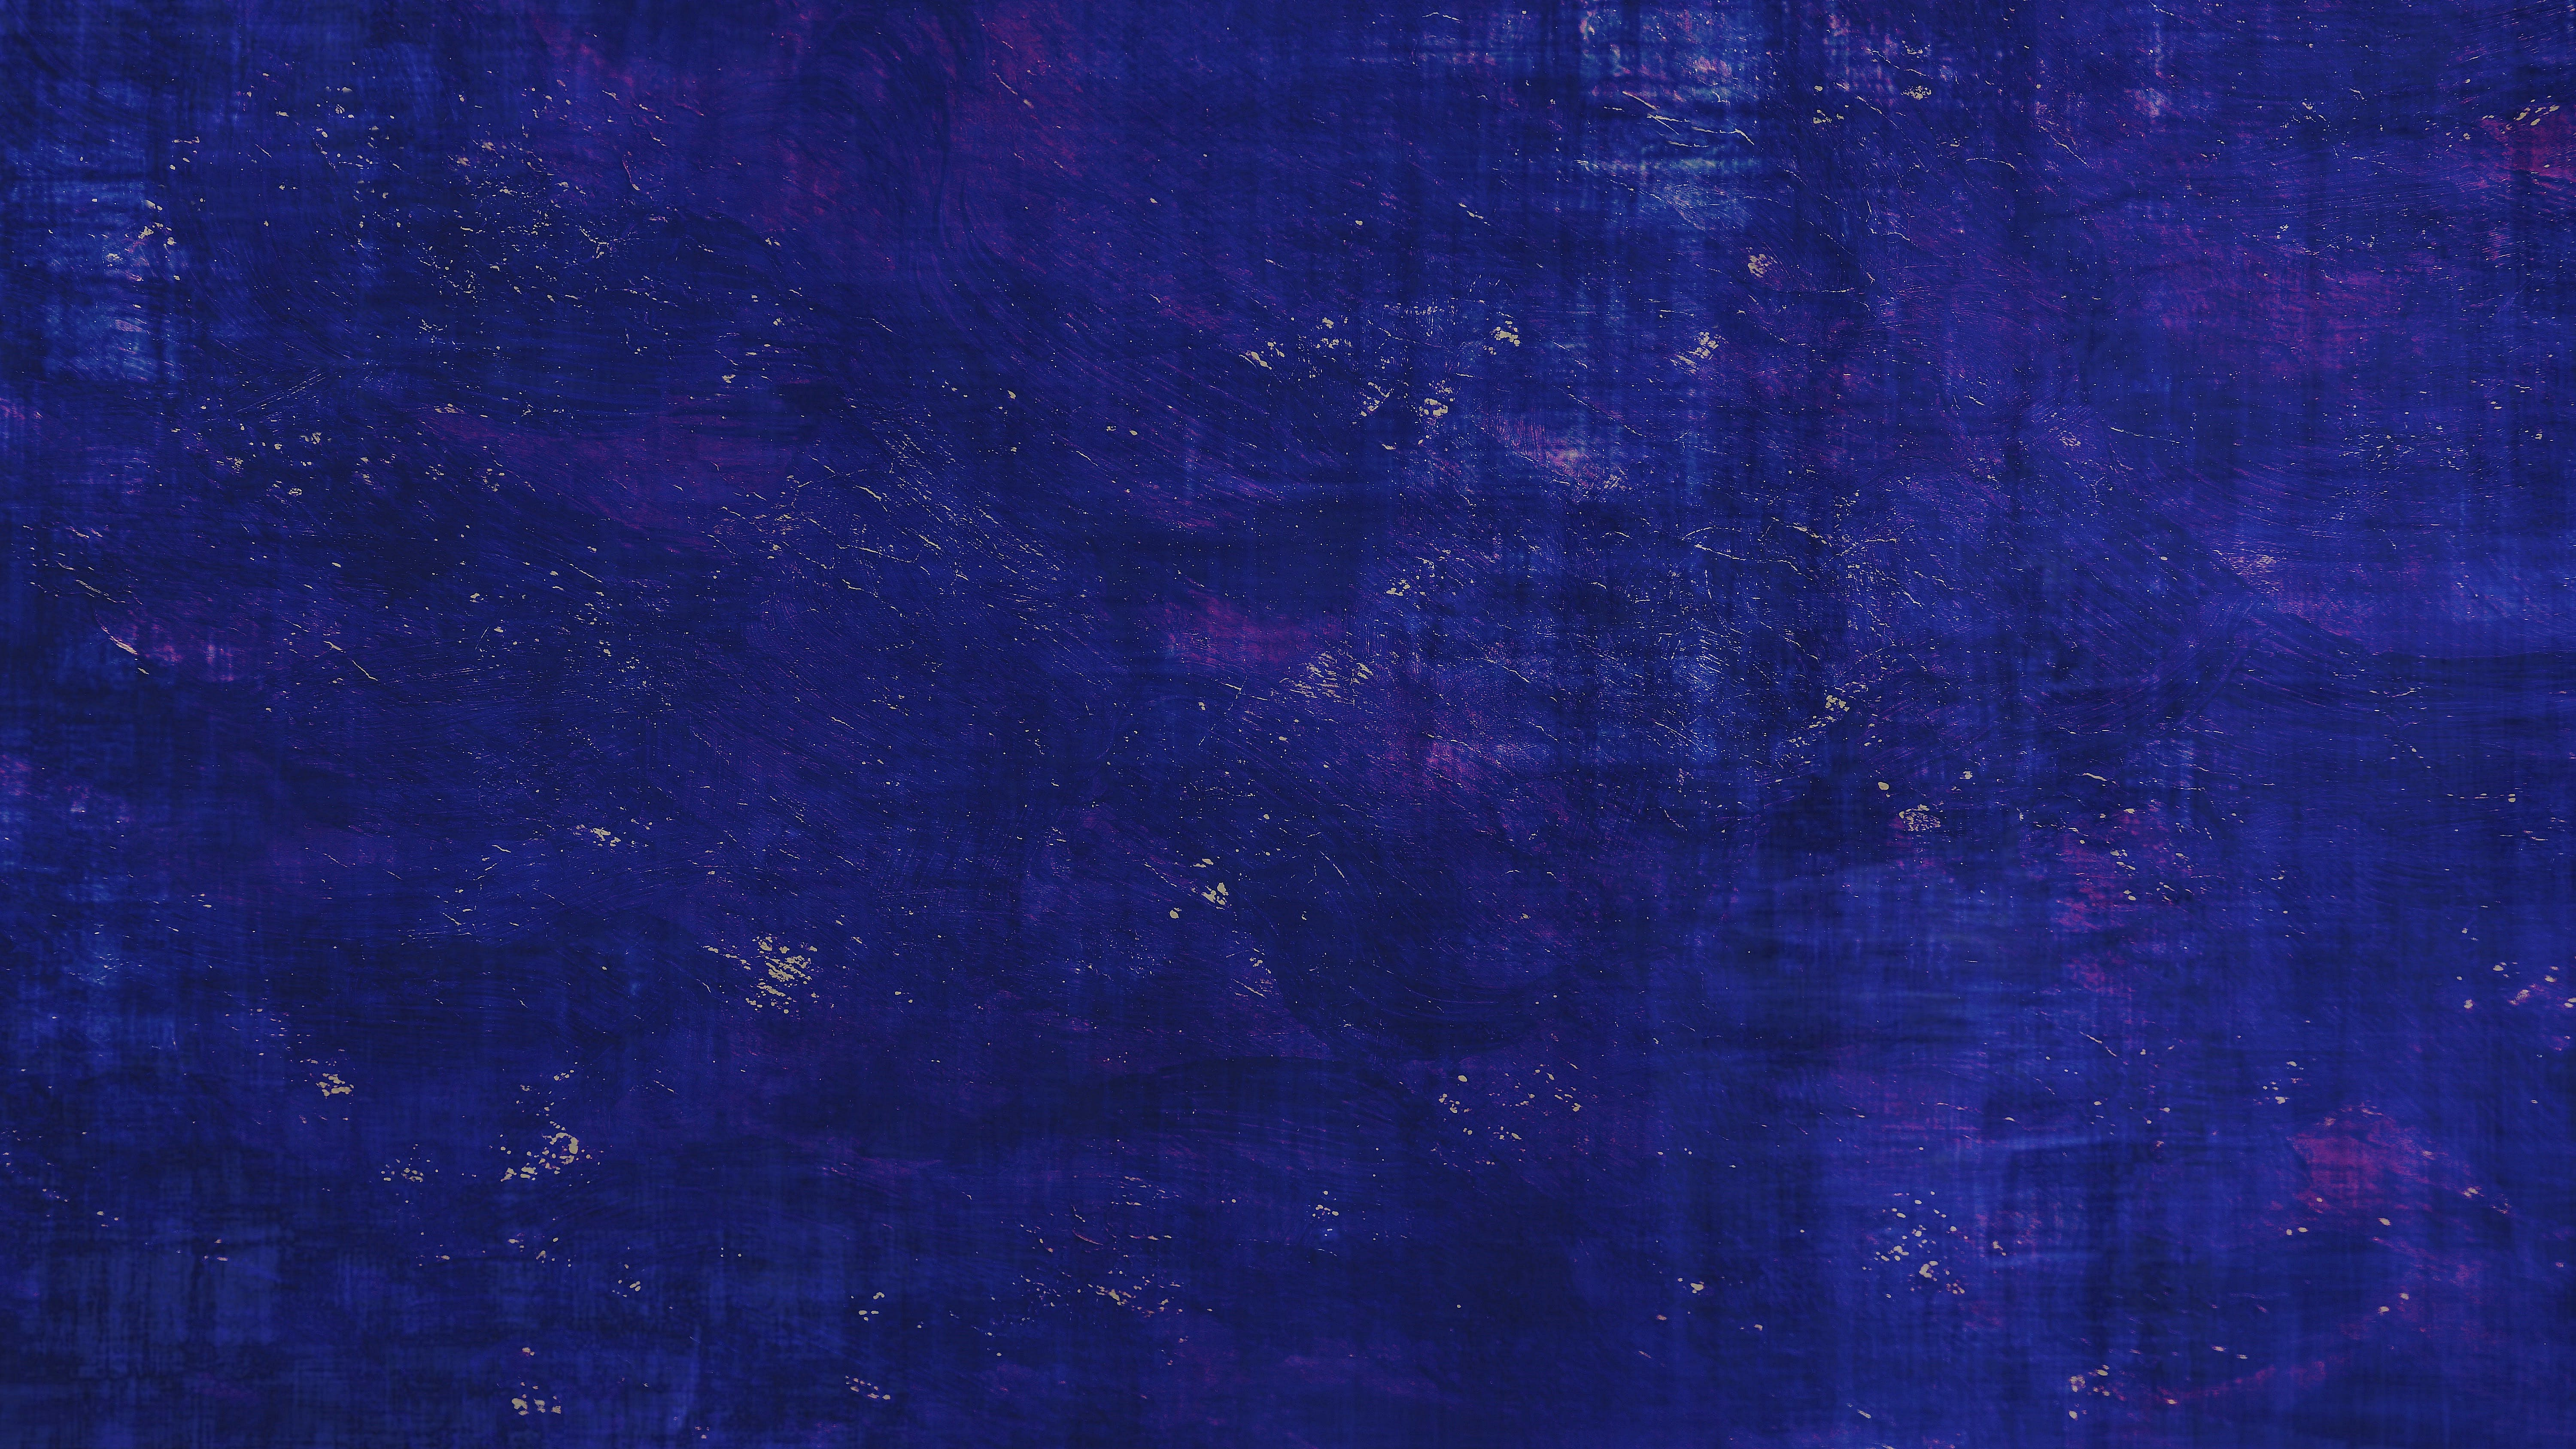 Free stock photo of abstract background, art background, background, blue background